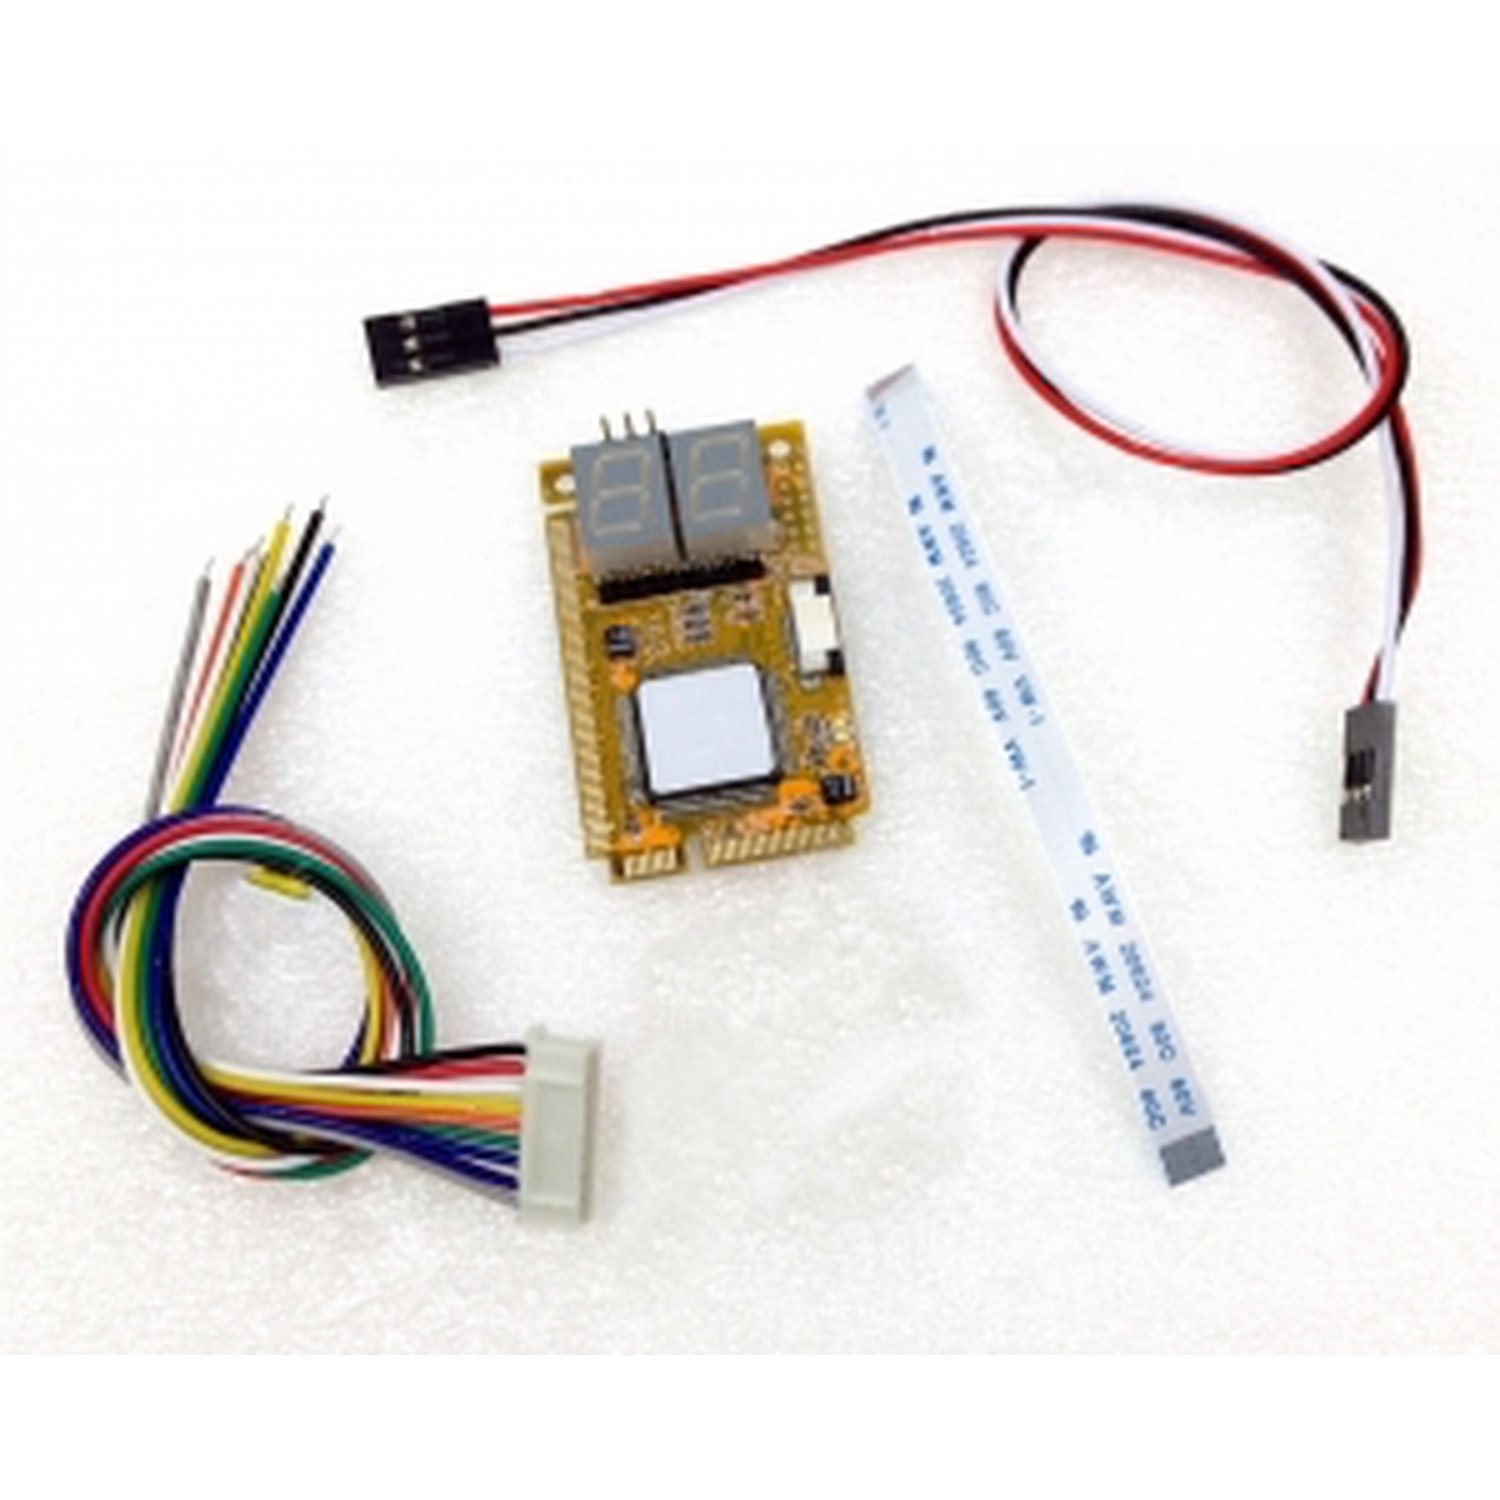 купить Diagnostic Post Test Card Debug Card laptop minipci/minipcie/lpc/Elpc/i2c дешево